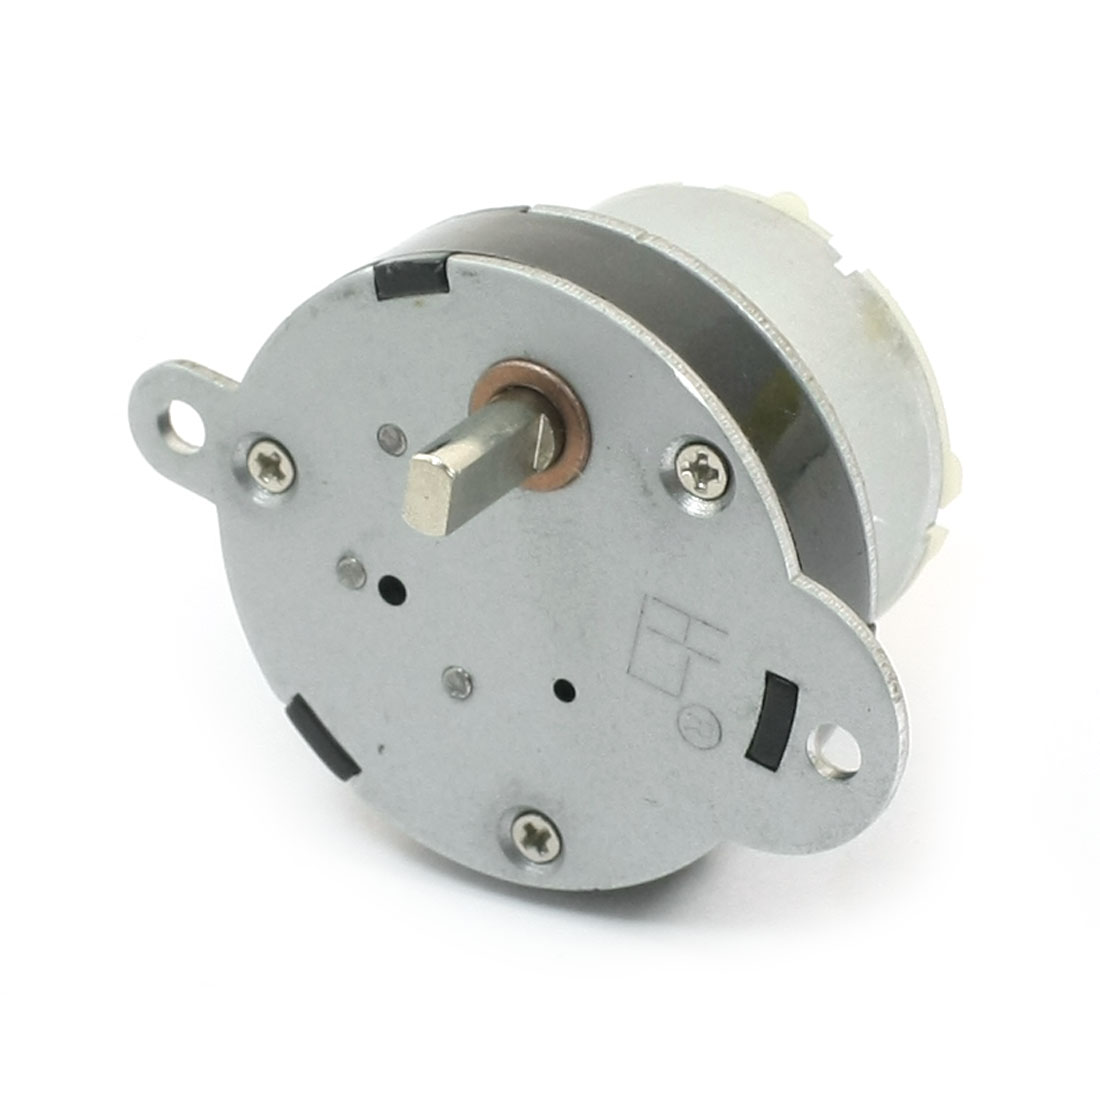 DC 12V 5mm Dia Drive Shaft Connecting 40 r/min High Torque Rotary Speed Reducing Cylinder Shaped Electric Gearbox Motor